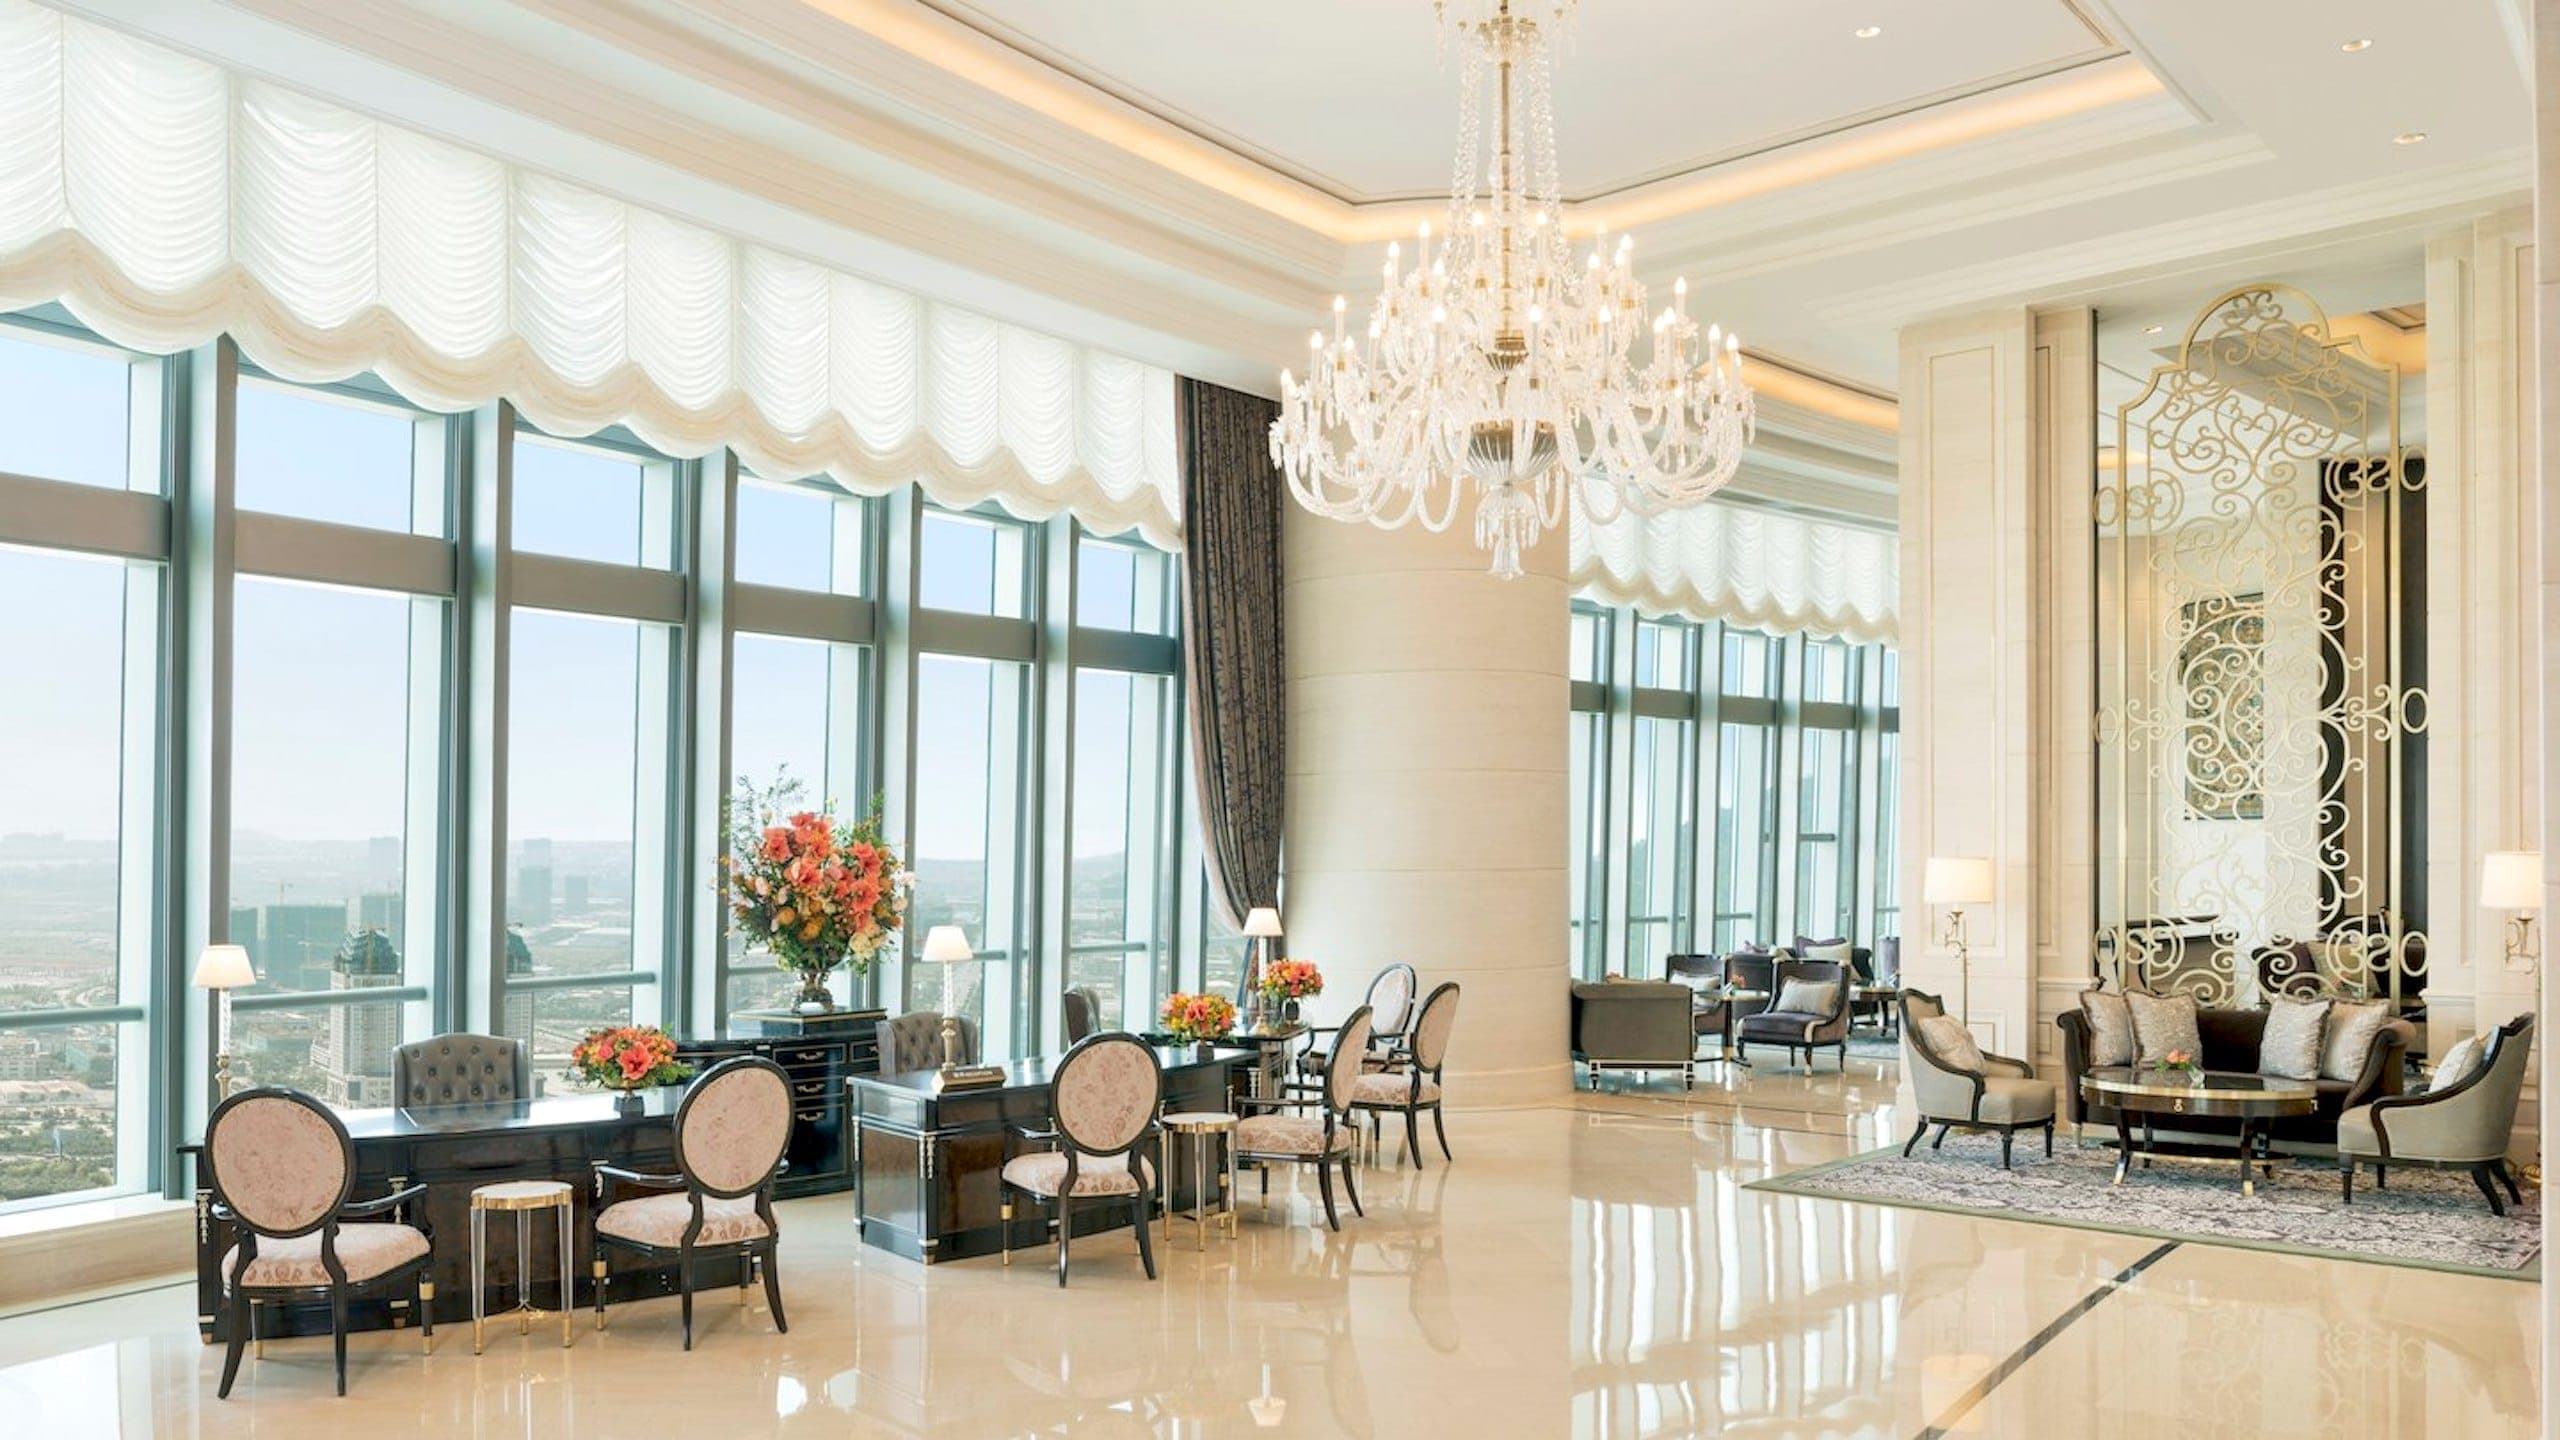 Review: The St. Regis Zhuhai brings Gilded Age style to the Chinese Riviera